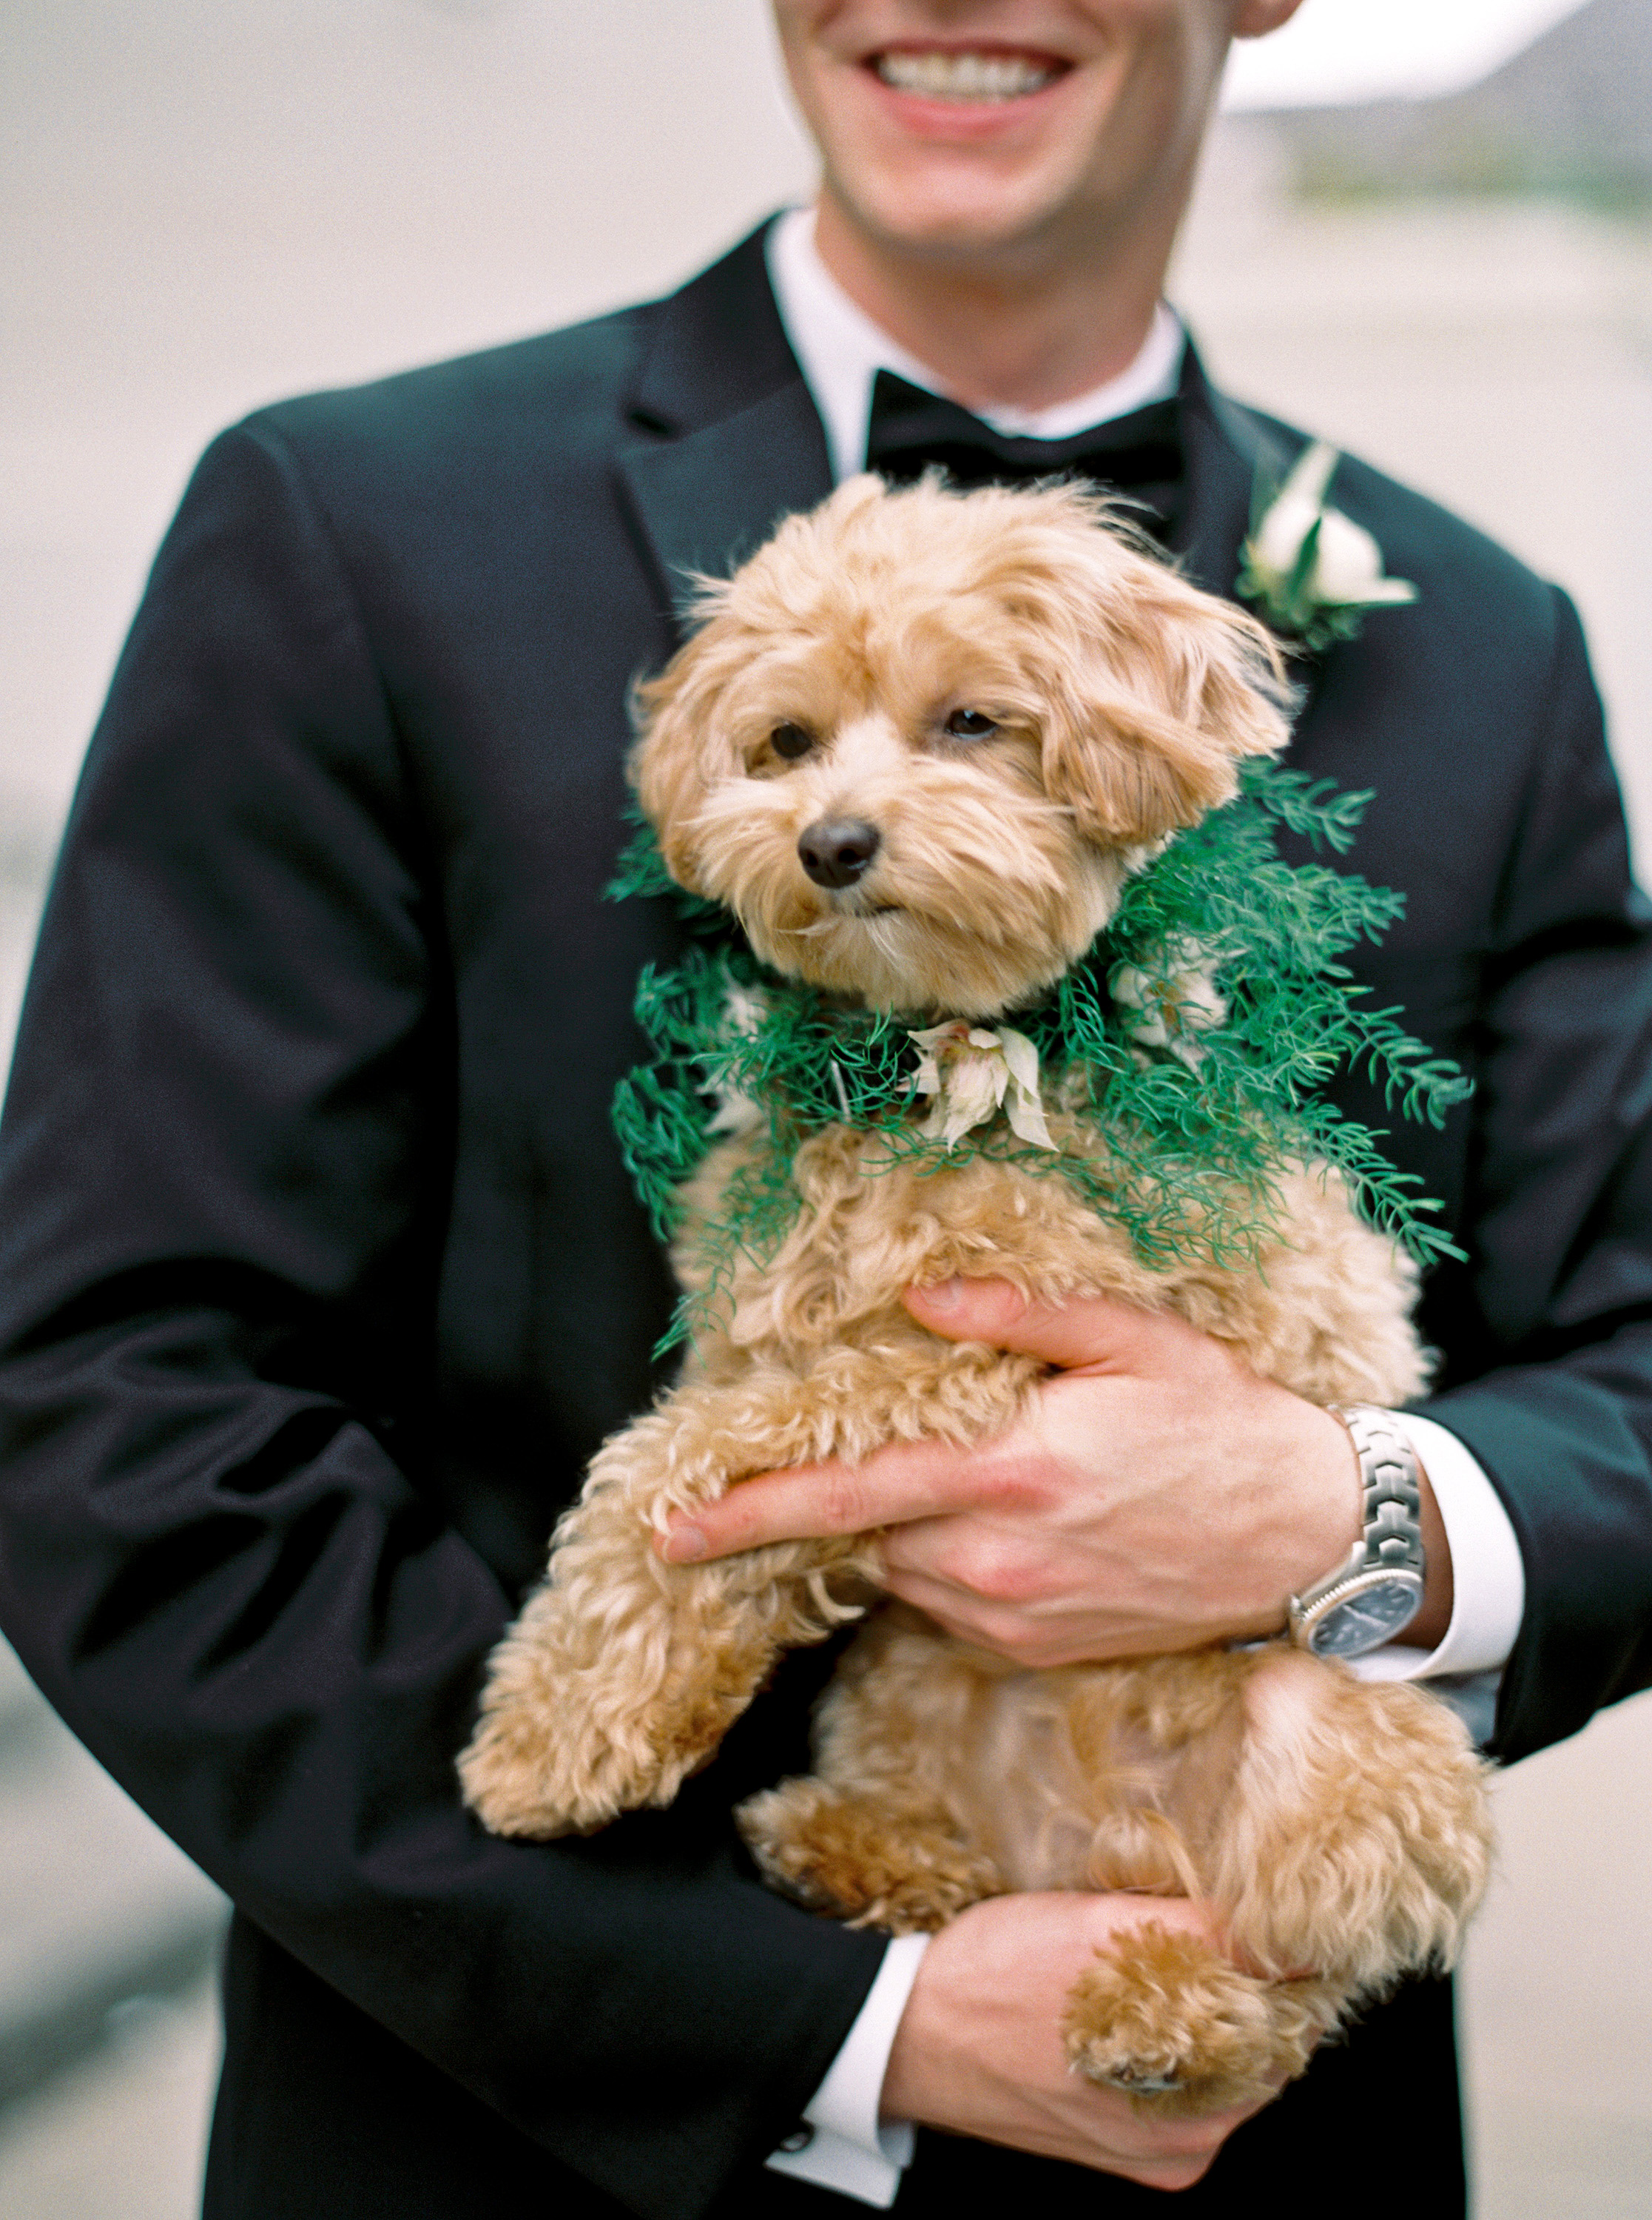 kate austin wedding dog groom